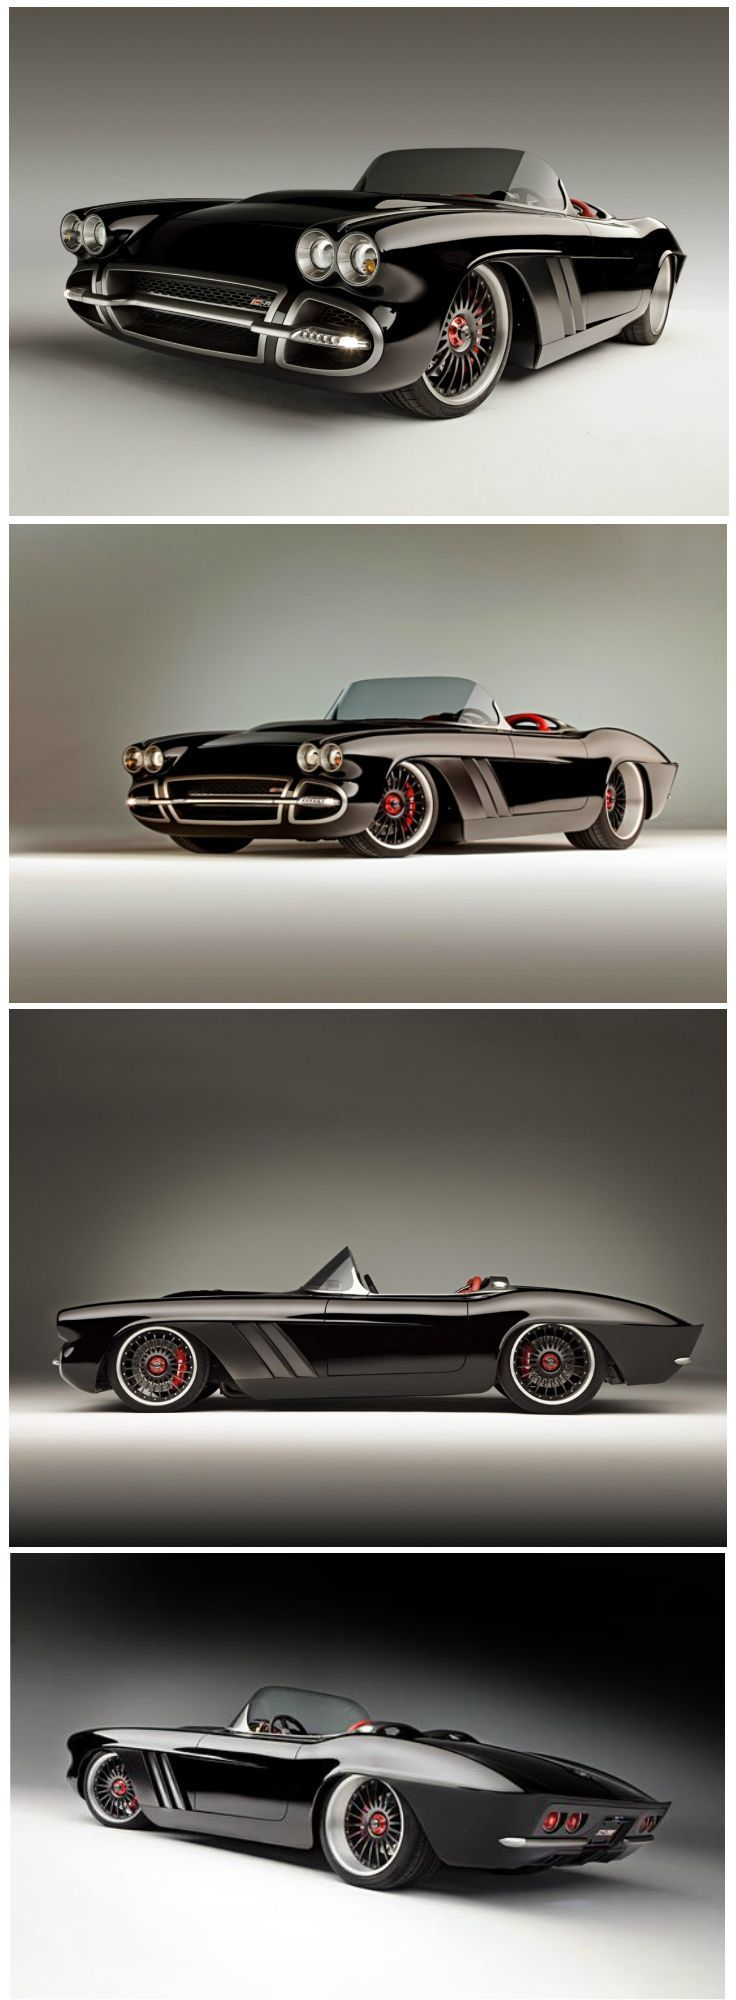 Car of the day: 1962 Chevrolet Corvette C1-RS.  http://www.pinterest.com/pin/151574343684551458/ … pic.twitter.com/YVUNIhOyVZ